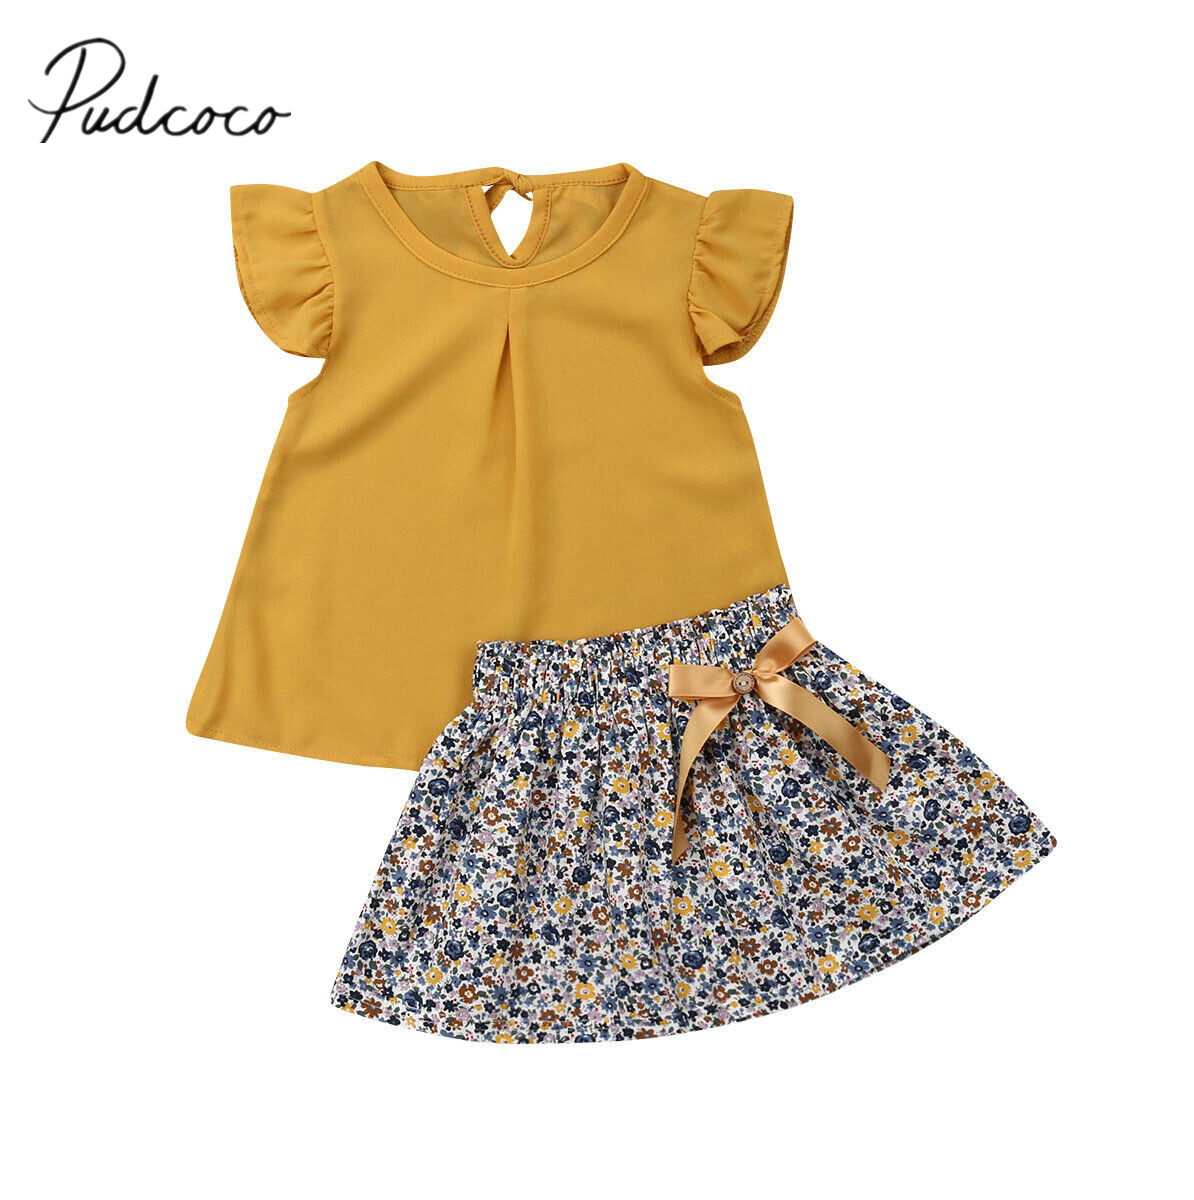 2019 Children Summer Clothing 1-5Y Toddler Kid Baby Girl Clothes Sets Yellow Chiffon Tops+Floral A-Line Skirt Outfits Clothes